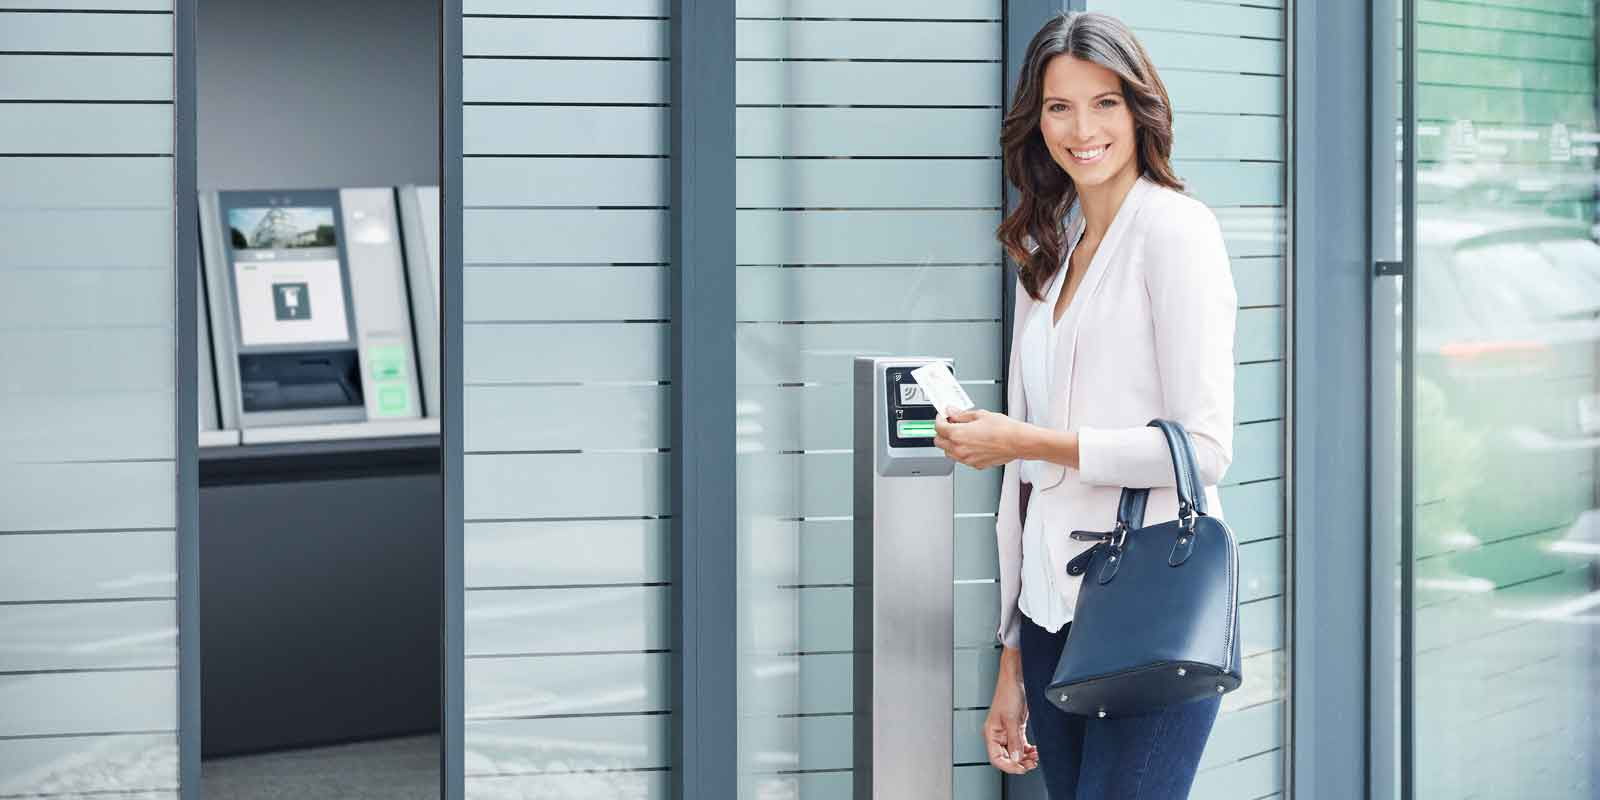 Woman opens the door to a bank branch by using KeBin S10 and authentication via NFC-technology